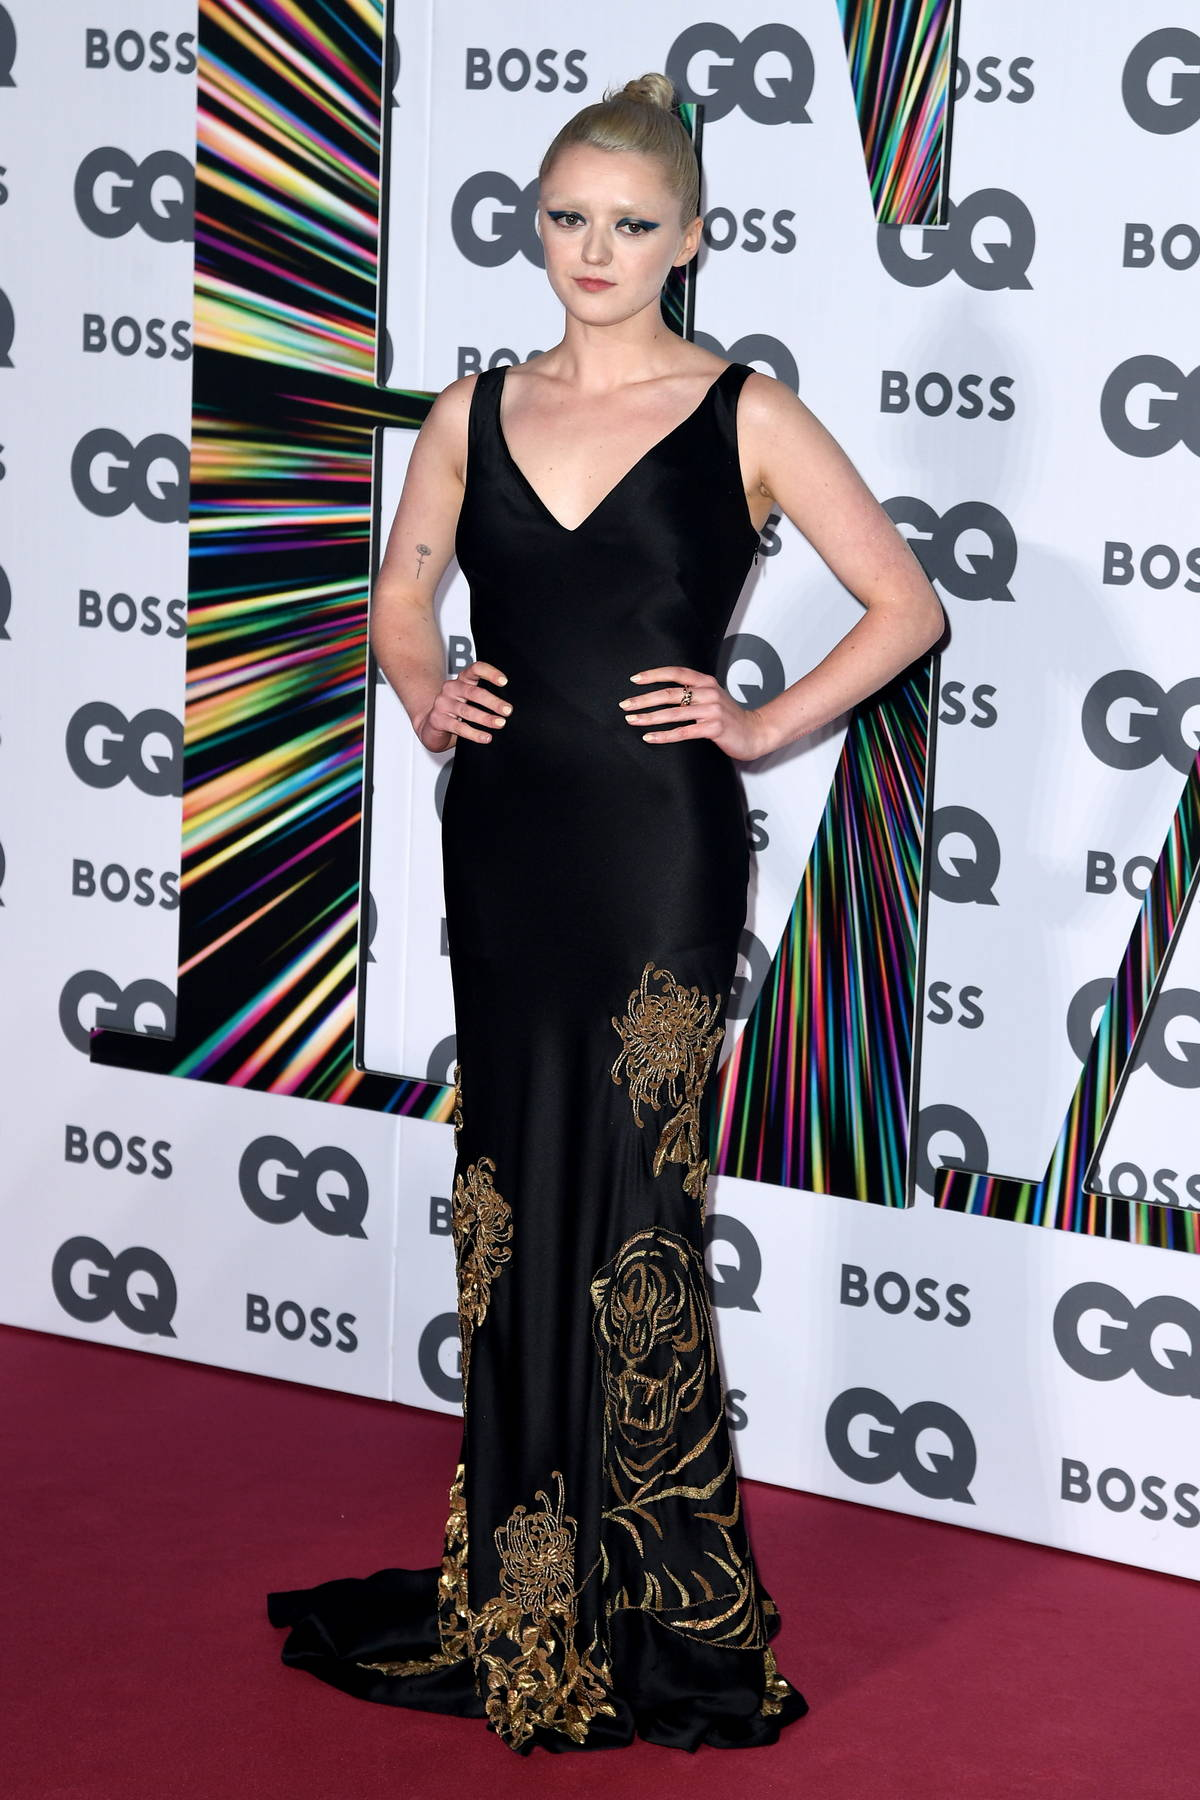 Maisie Williams attends the GQ Men Of The Year Awards 2021 at the Tate Modern in London, UK